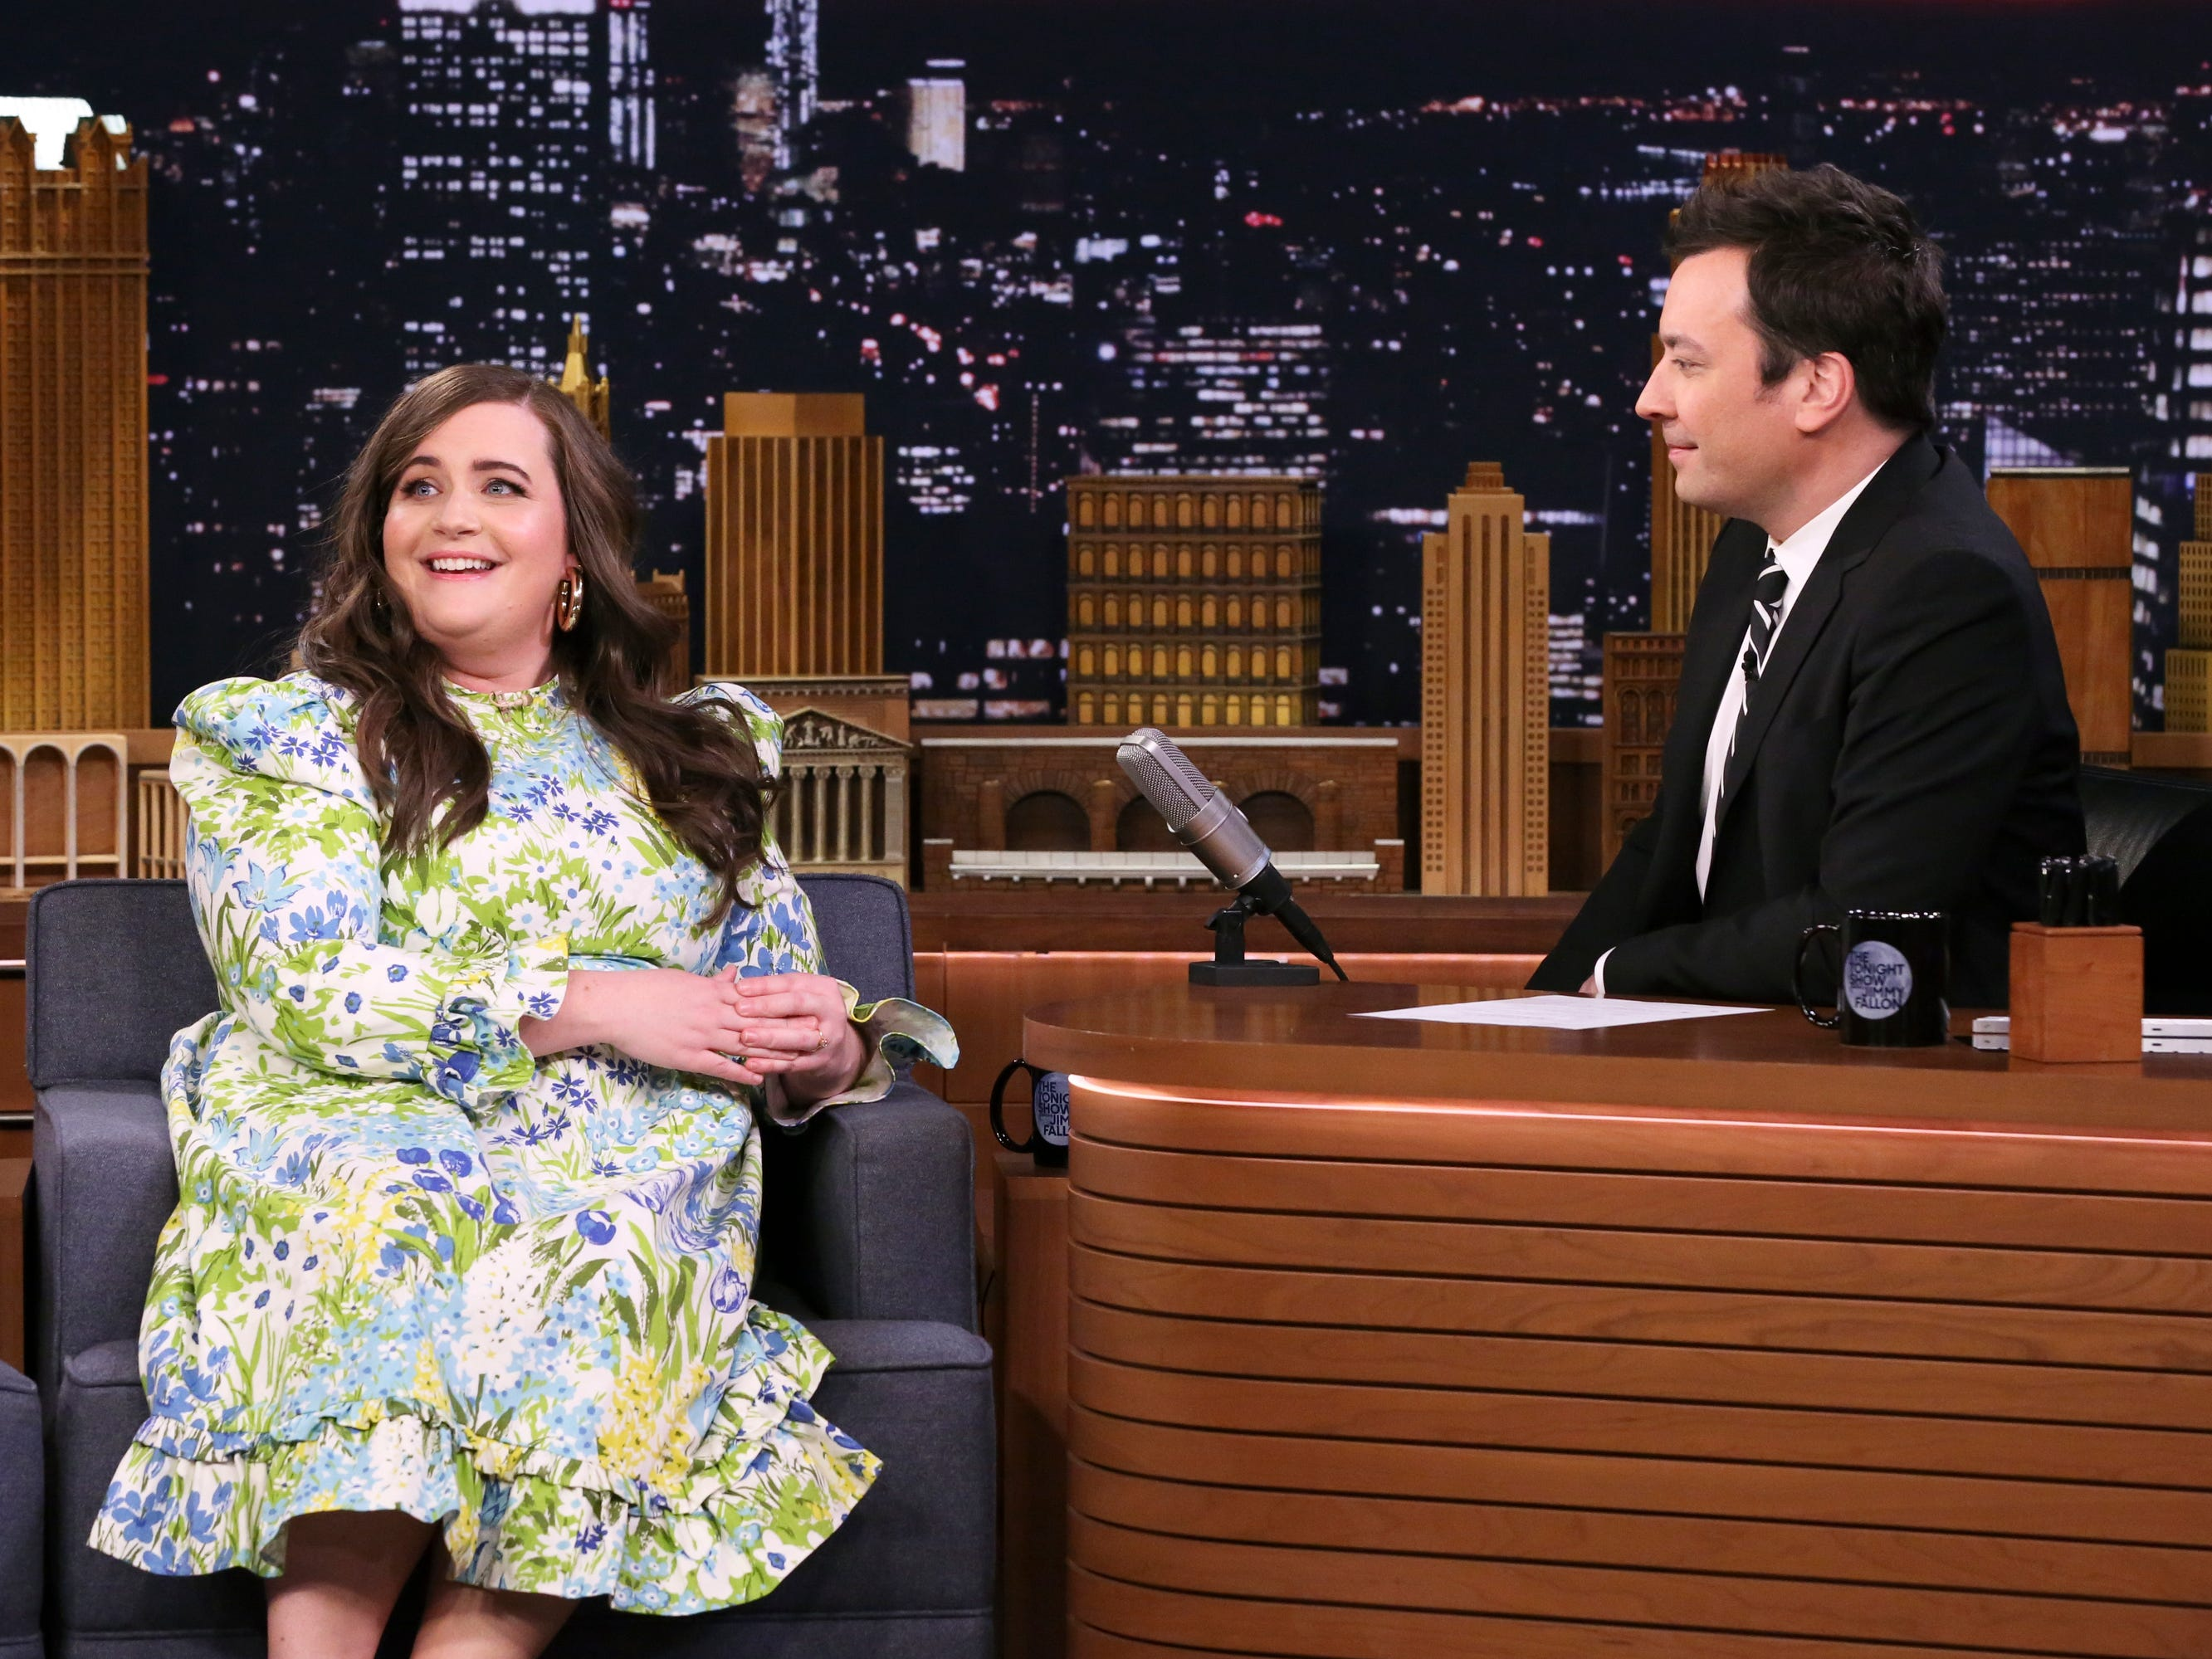 THE TONIGHT SHOW STARRING JIMMY FALLON -- Episode 1033 -- Pictured: (l-r) Comedian Aidy Bryant during an interview with host Jimmy Fallon on March 19, 2019 -- (Photo by: Andrew Lipovsky/NBC)